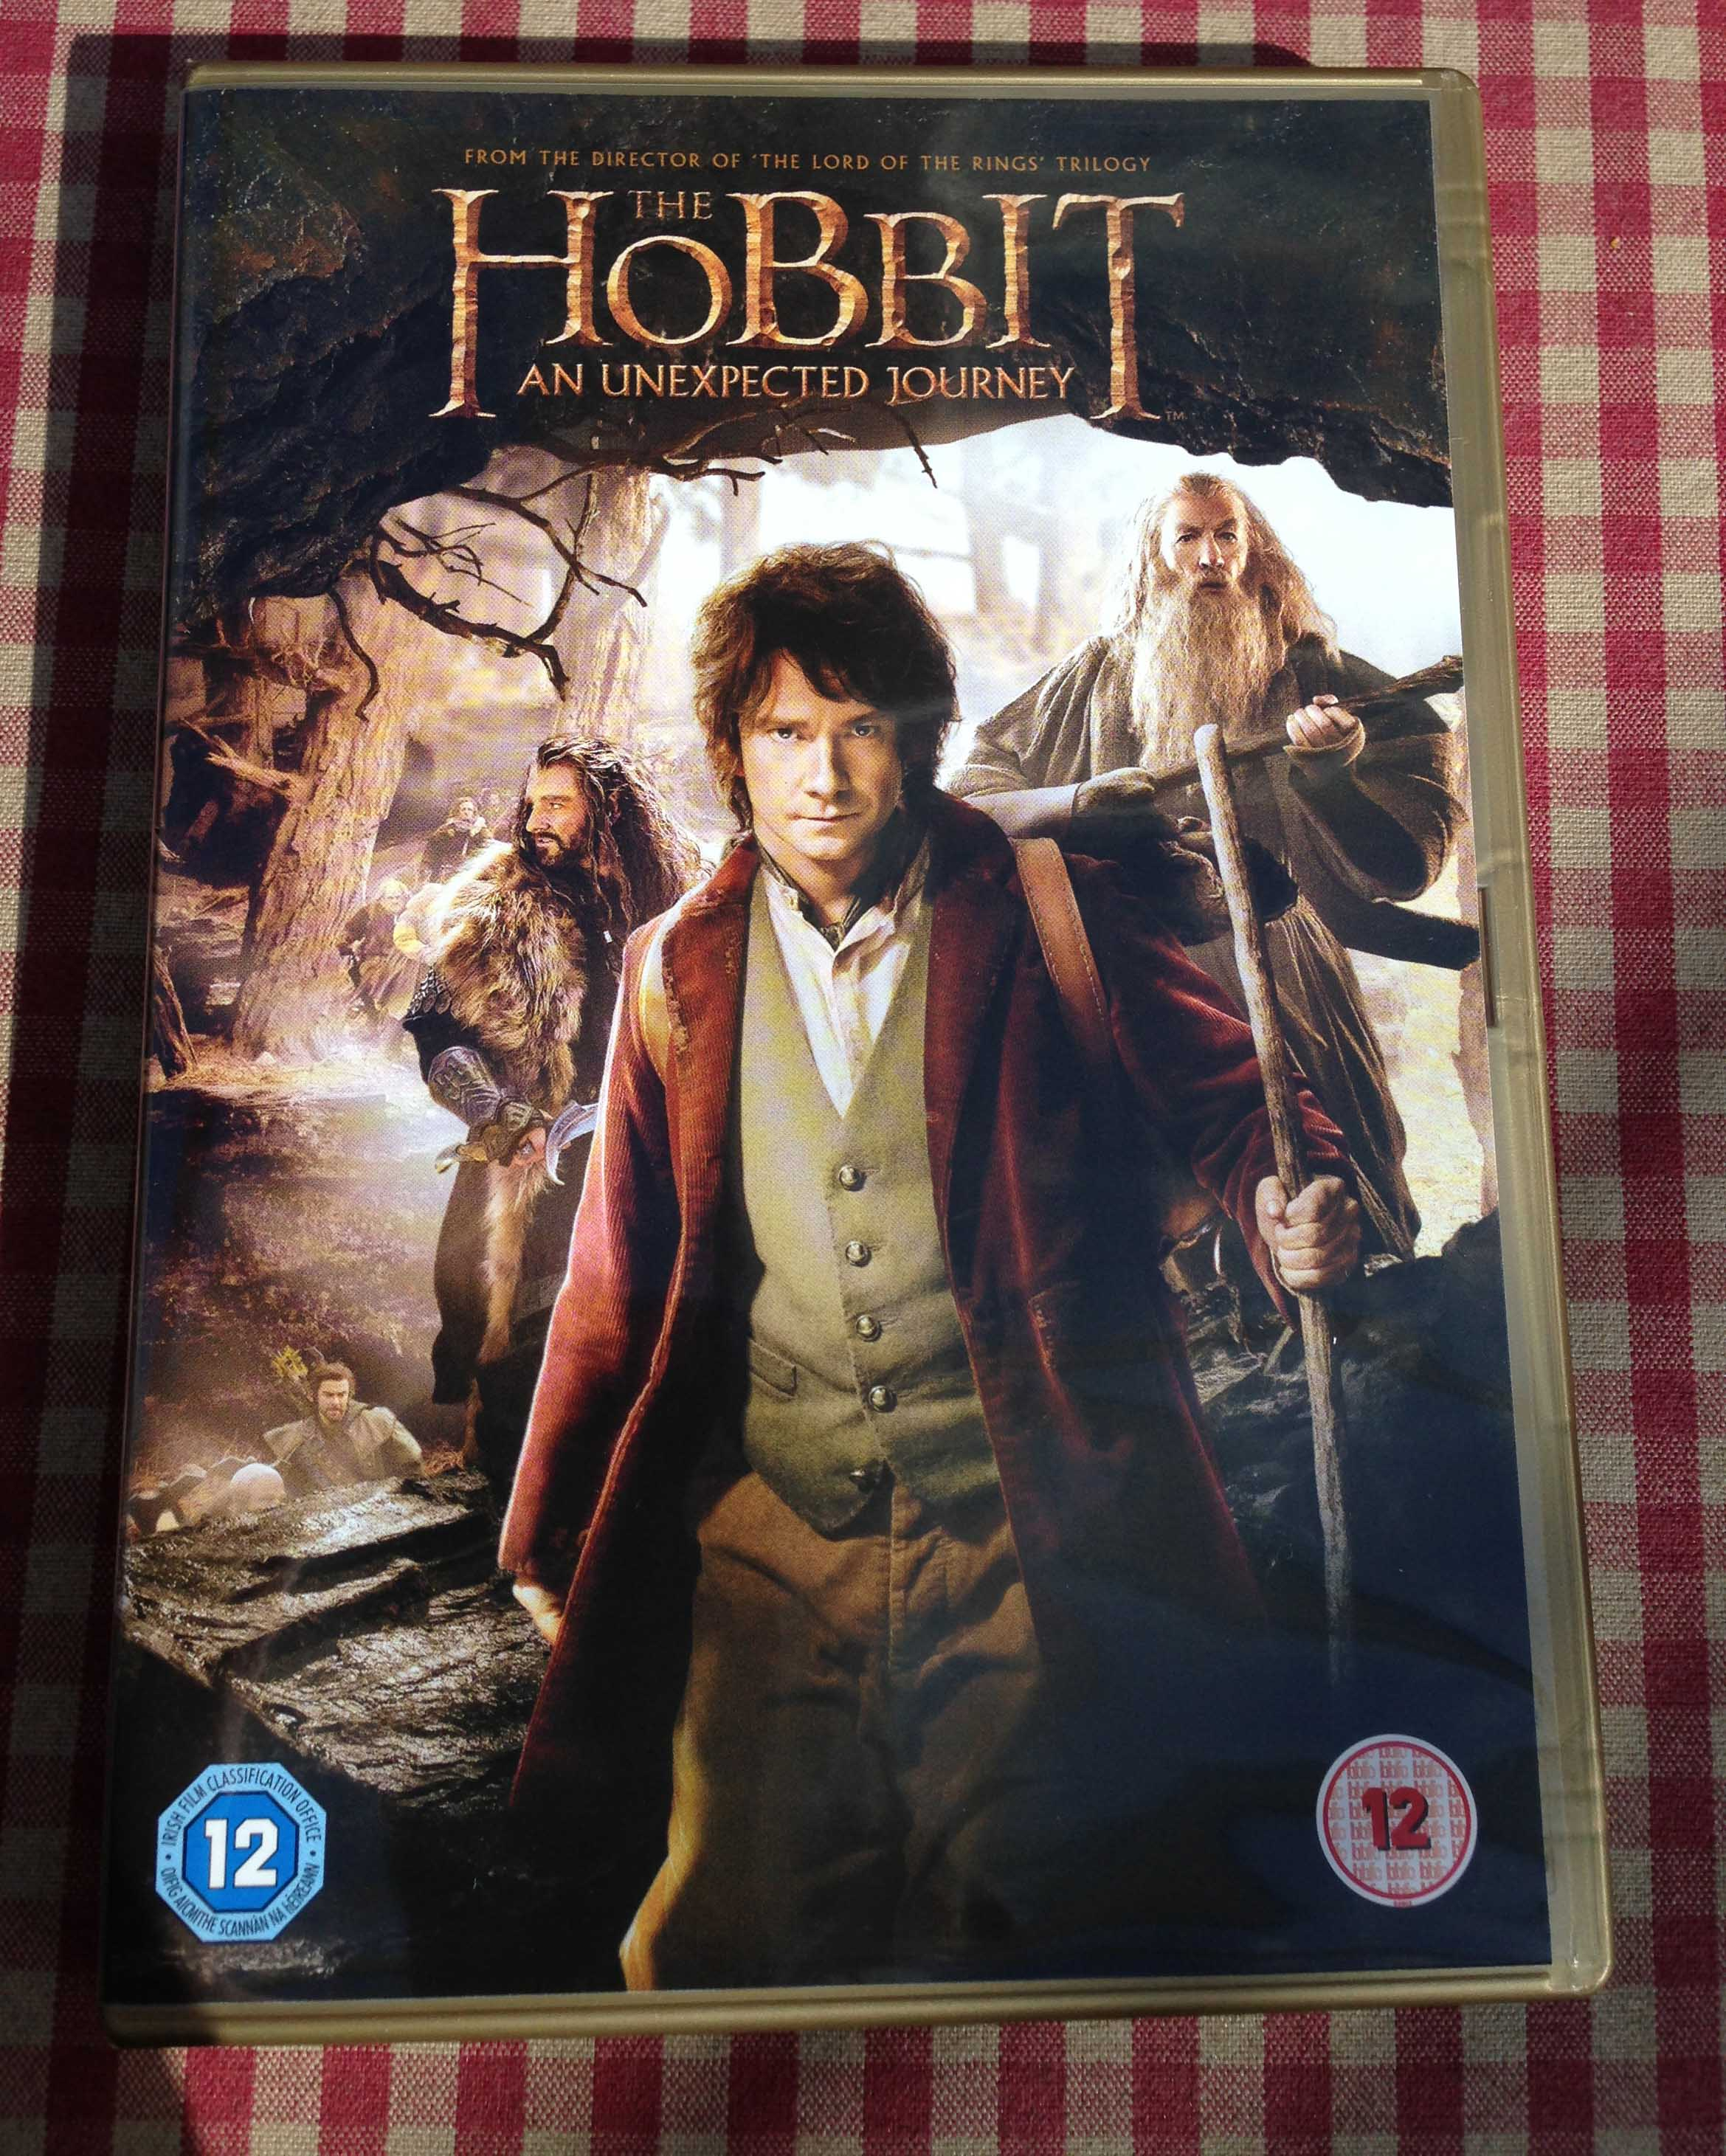 on the hobbit  it s an essay about how you view things can affect how you see things it s written off the back of the recent release of the hobbit